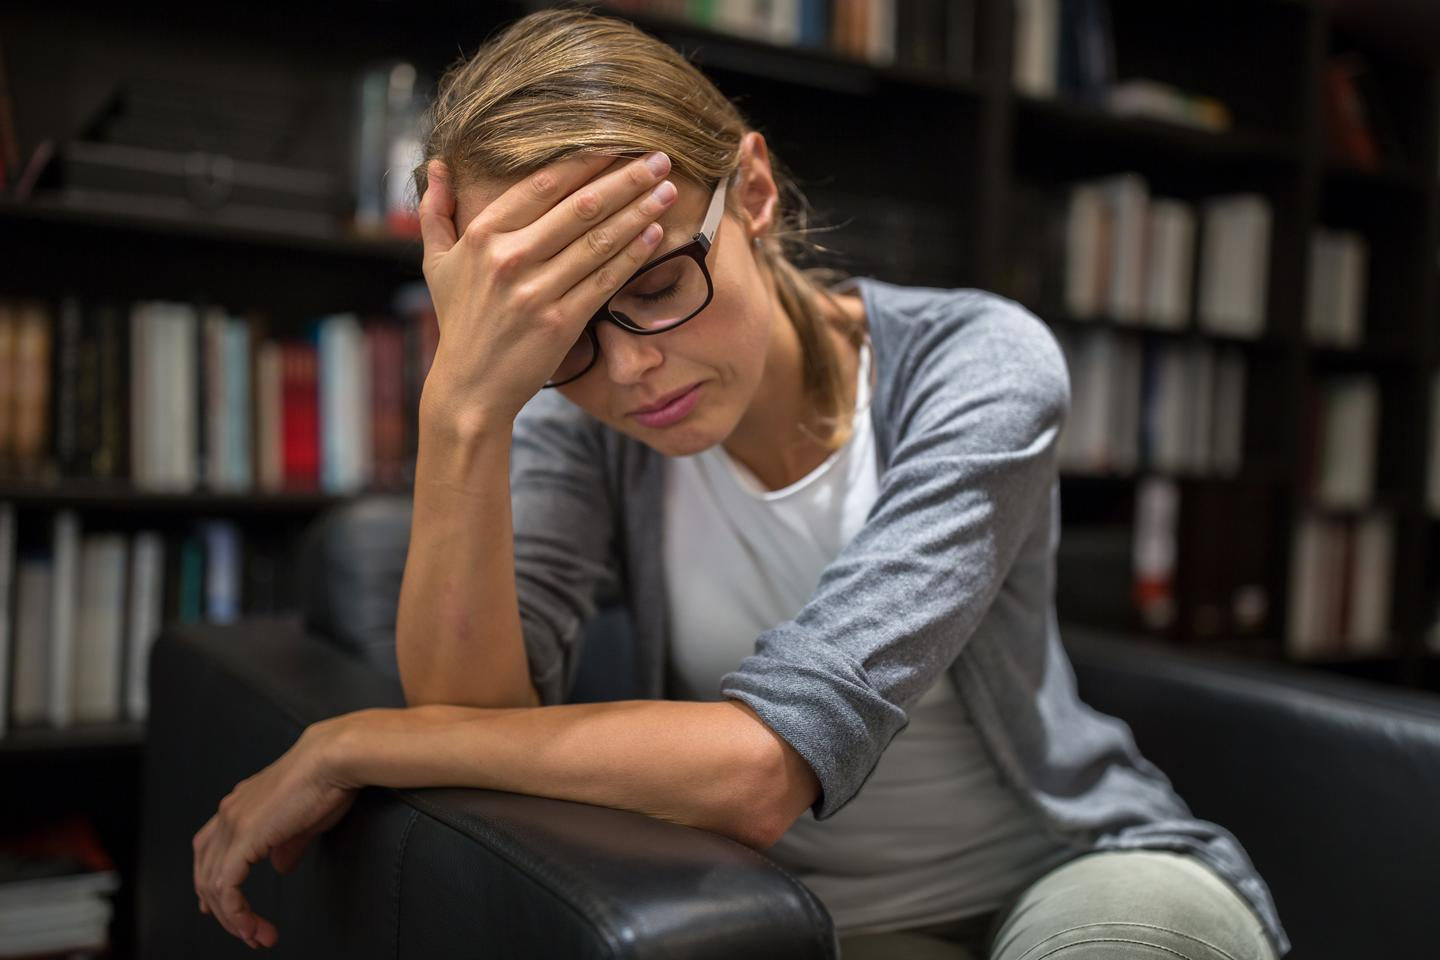 People with major depressive disorder have higher levels of the GPR158 receptor protein